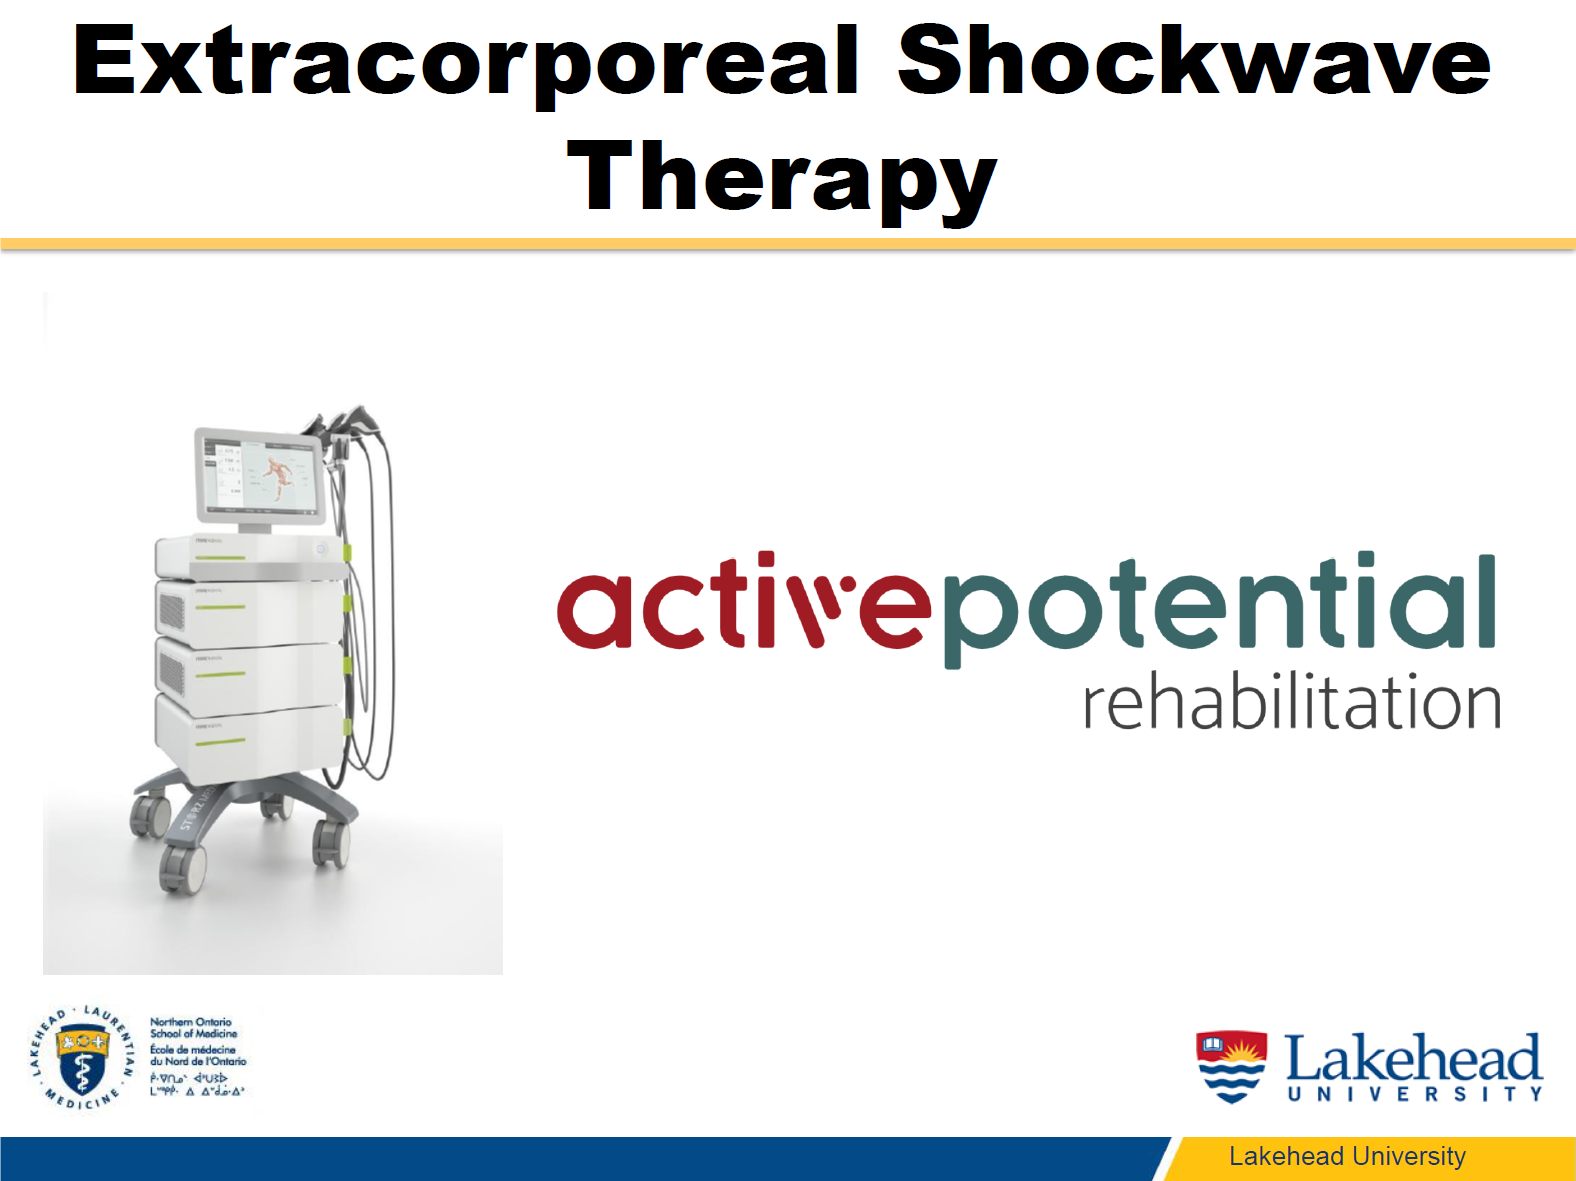 Dr. Sanzo Shockwave Therapy